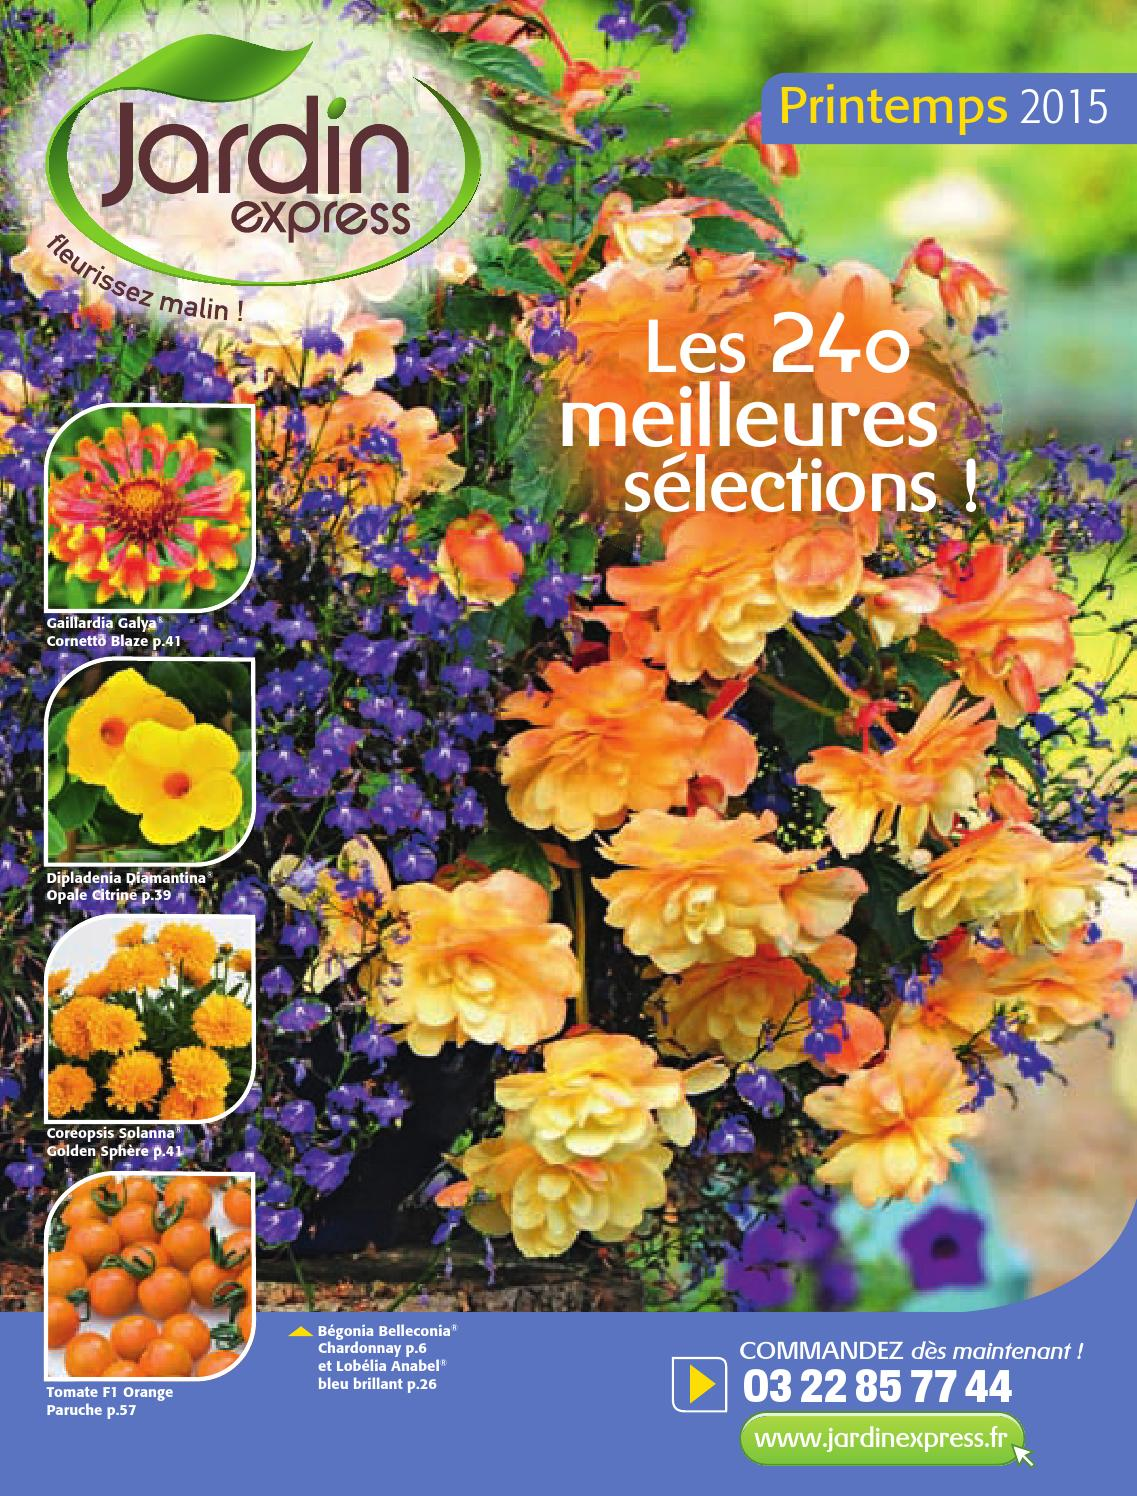 Jardin express printemps 2015 by blma issuu for Jardin express